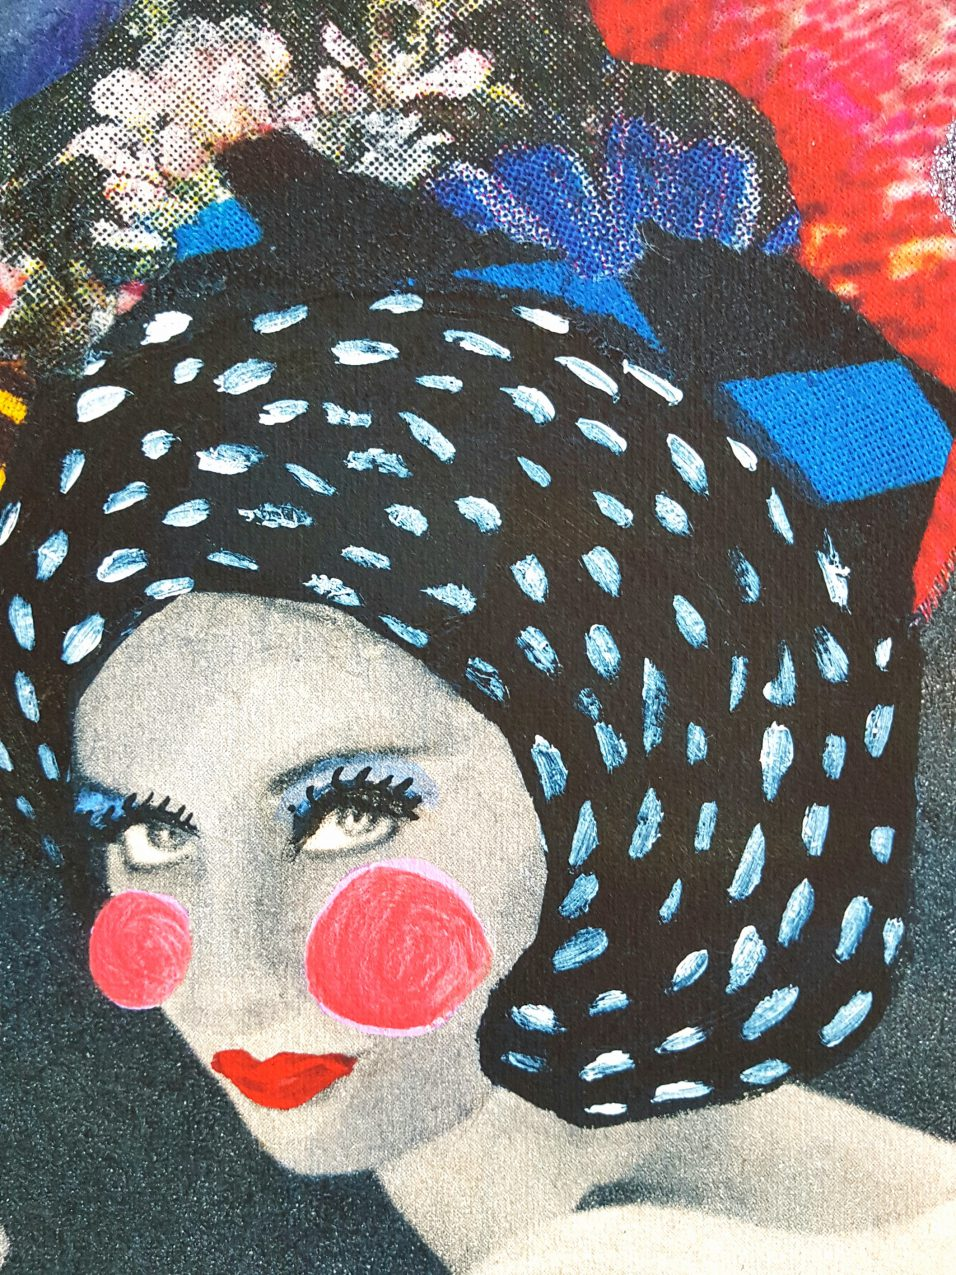 Noor Huige I'm with the girls 4 detail